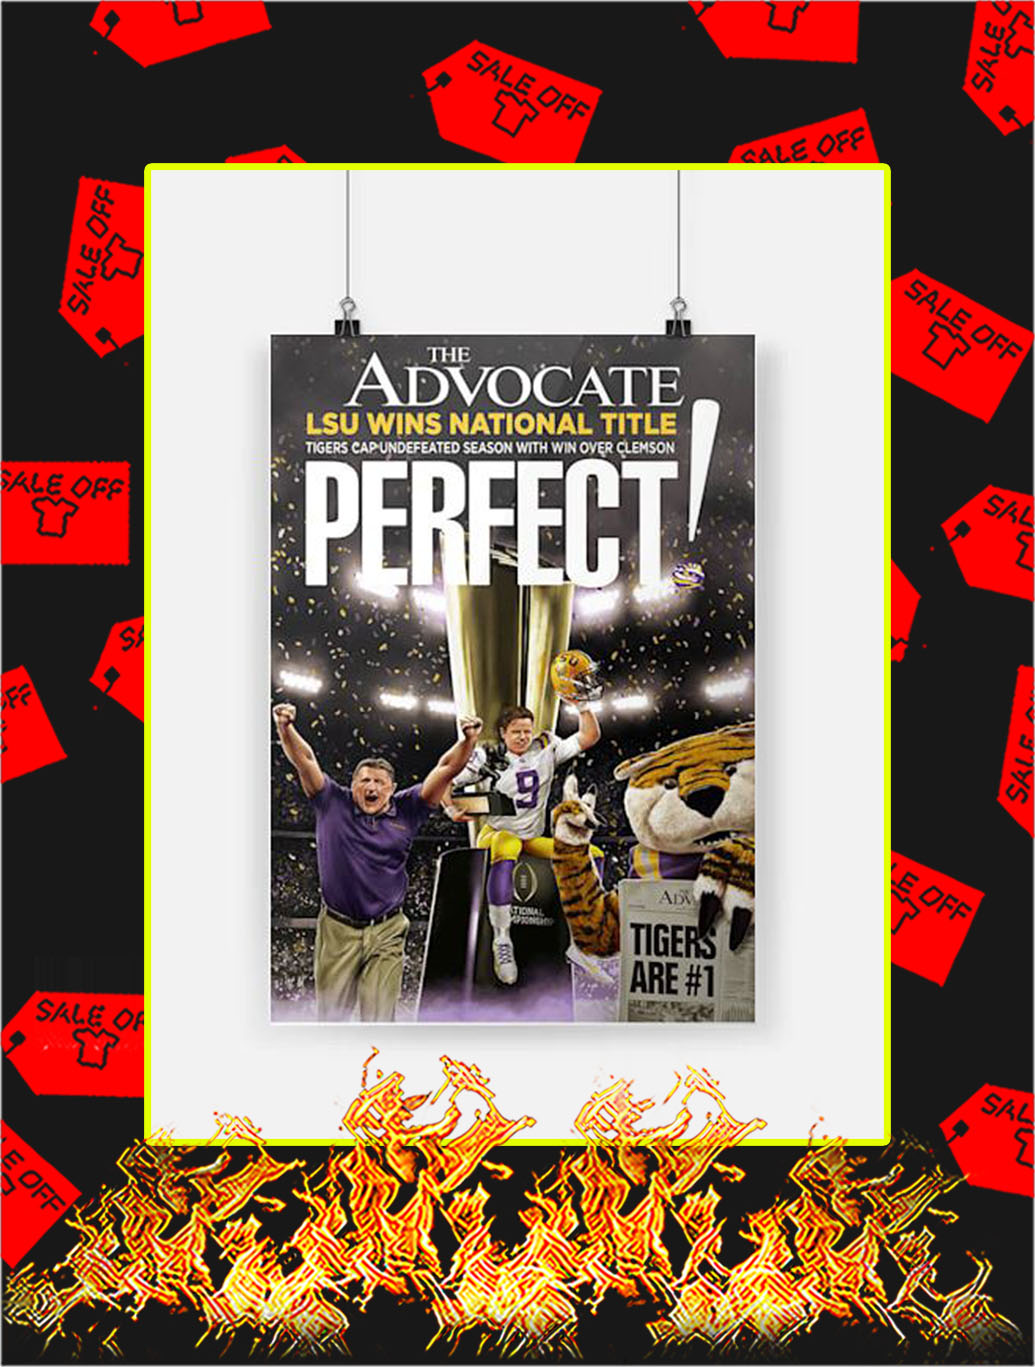 The Advocate LSU Wins National Title Poster- A4